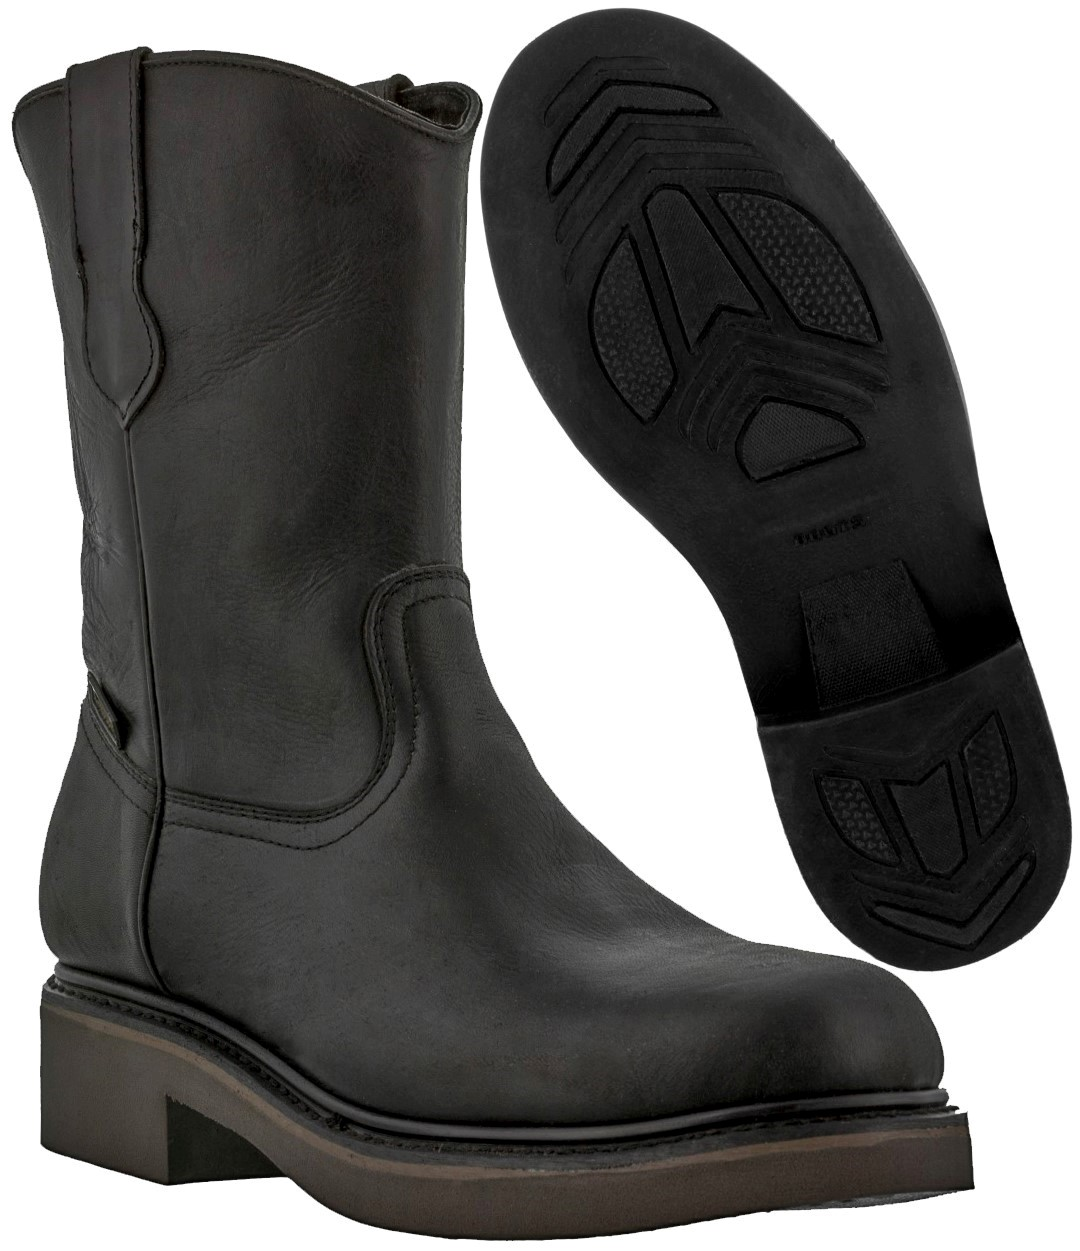 Men's Black Leather Pull On Work Boots